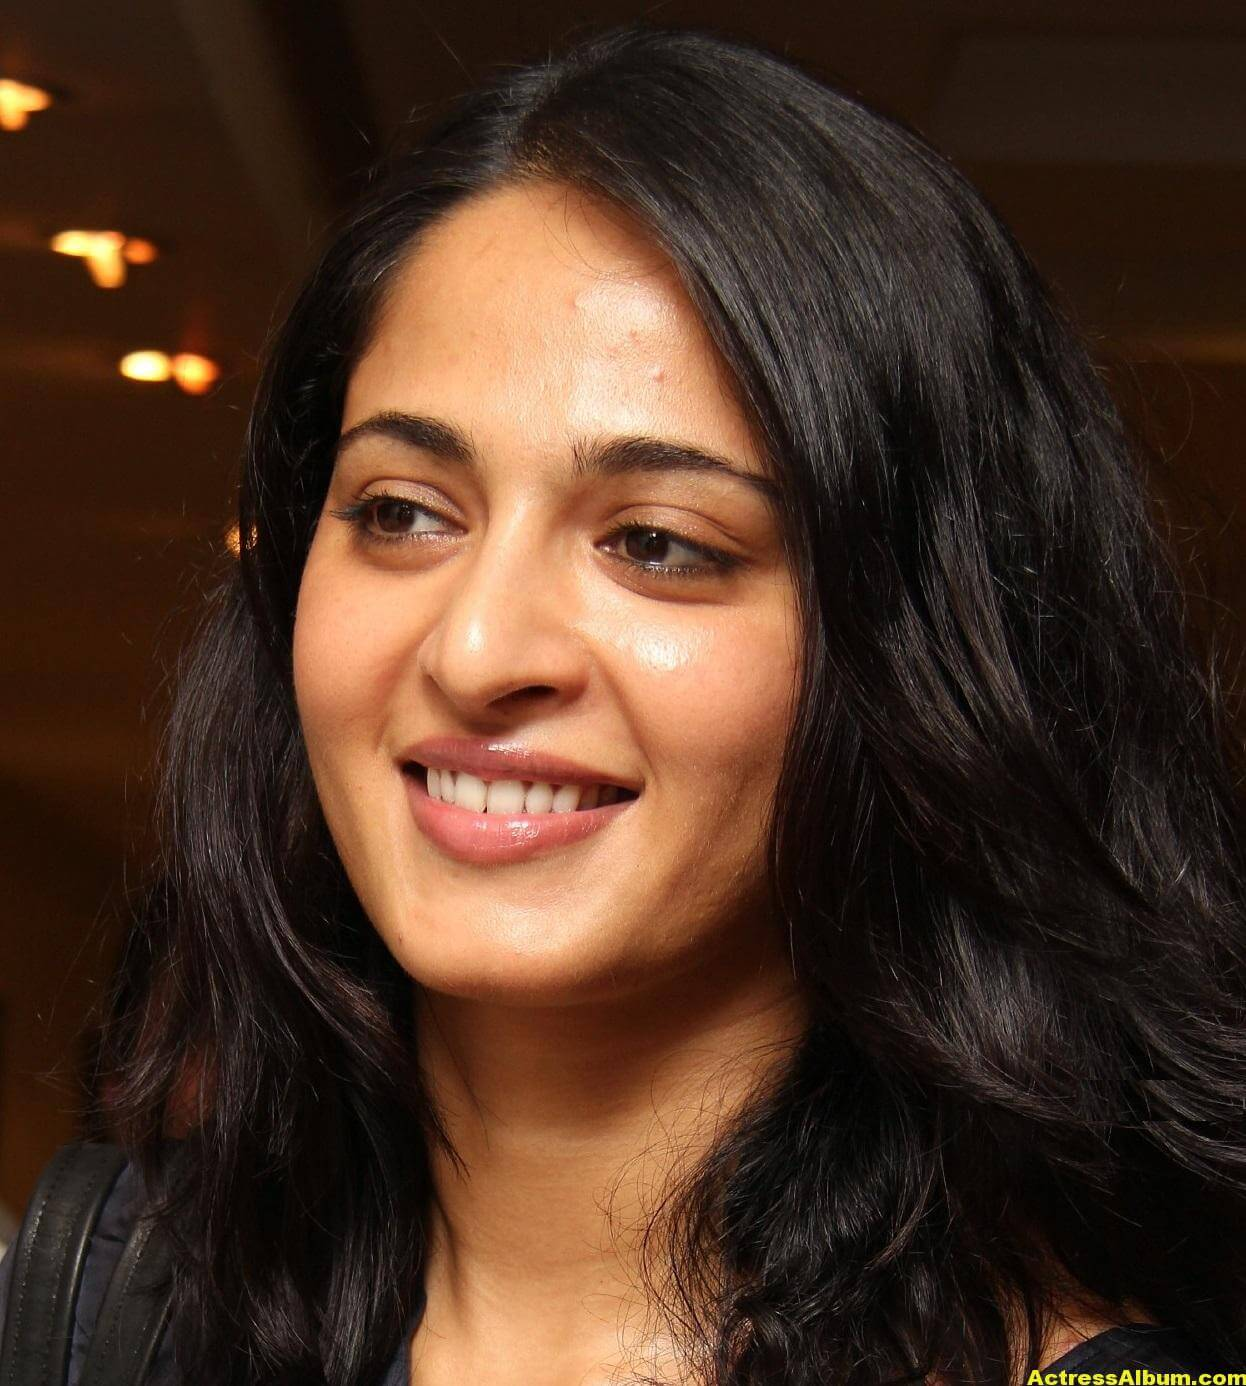 Anushka Shetty Gorgeous Face Close Up Photos 0